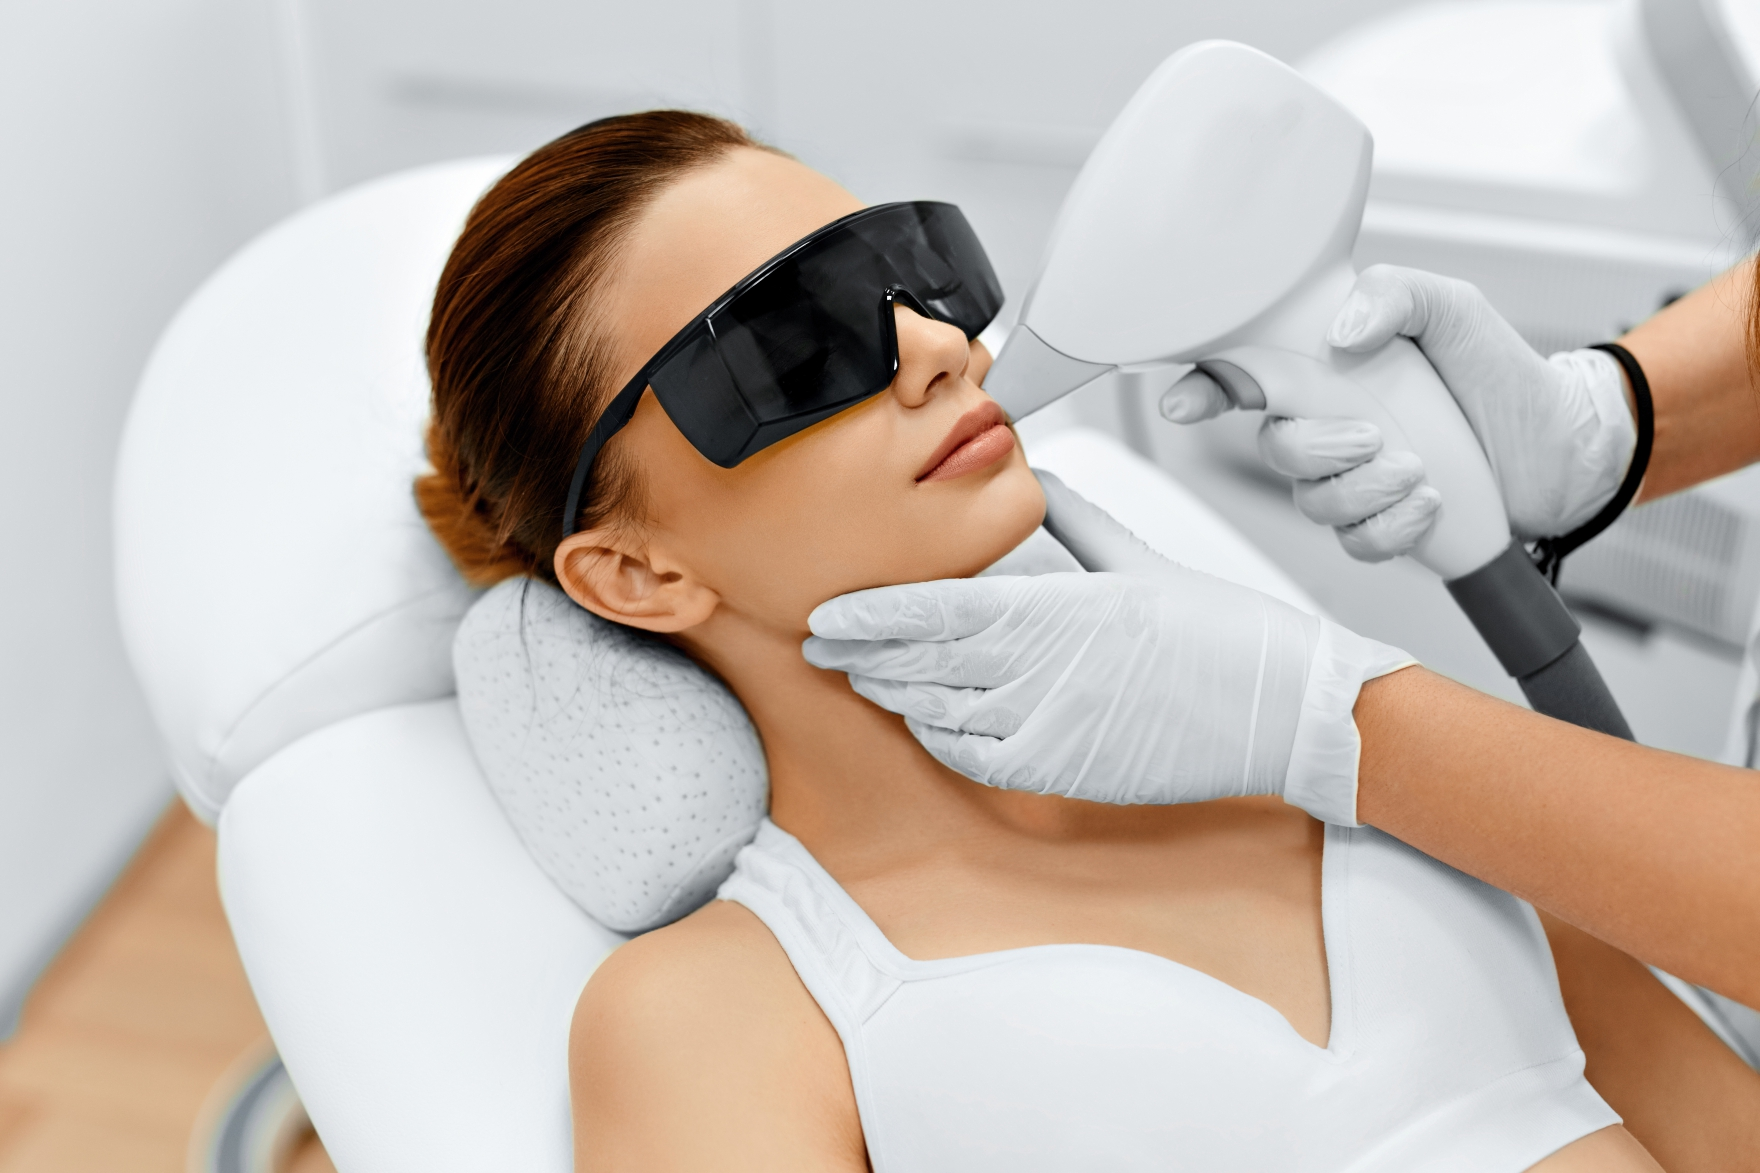 upperlip laser hair removal